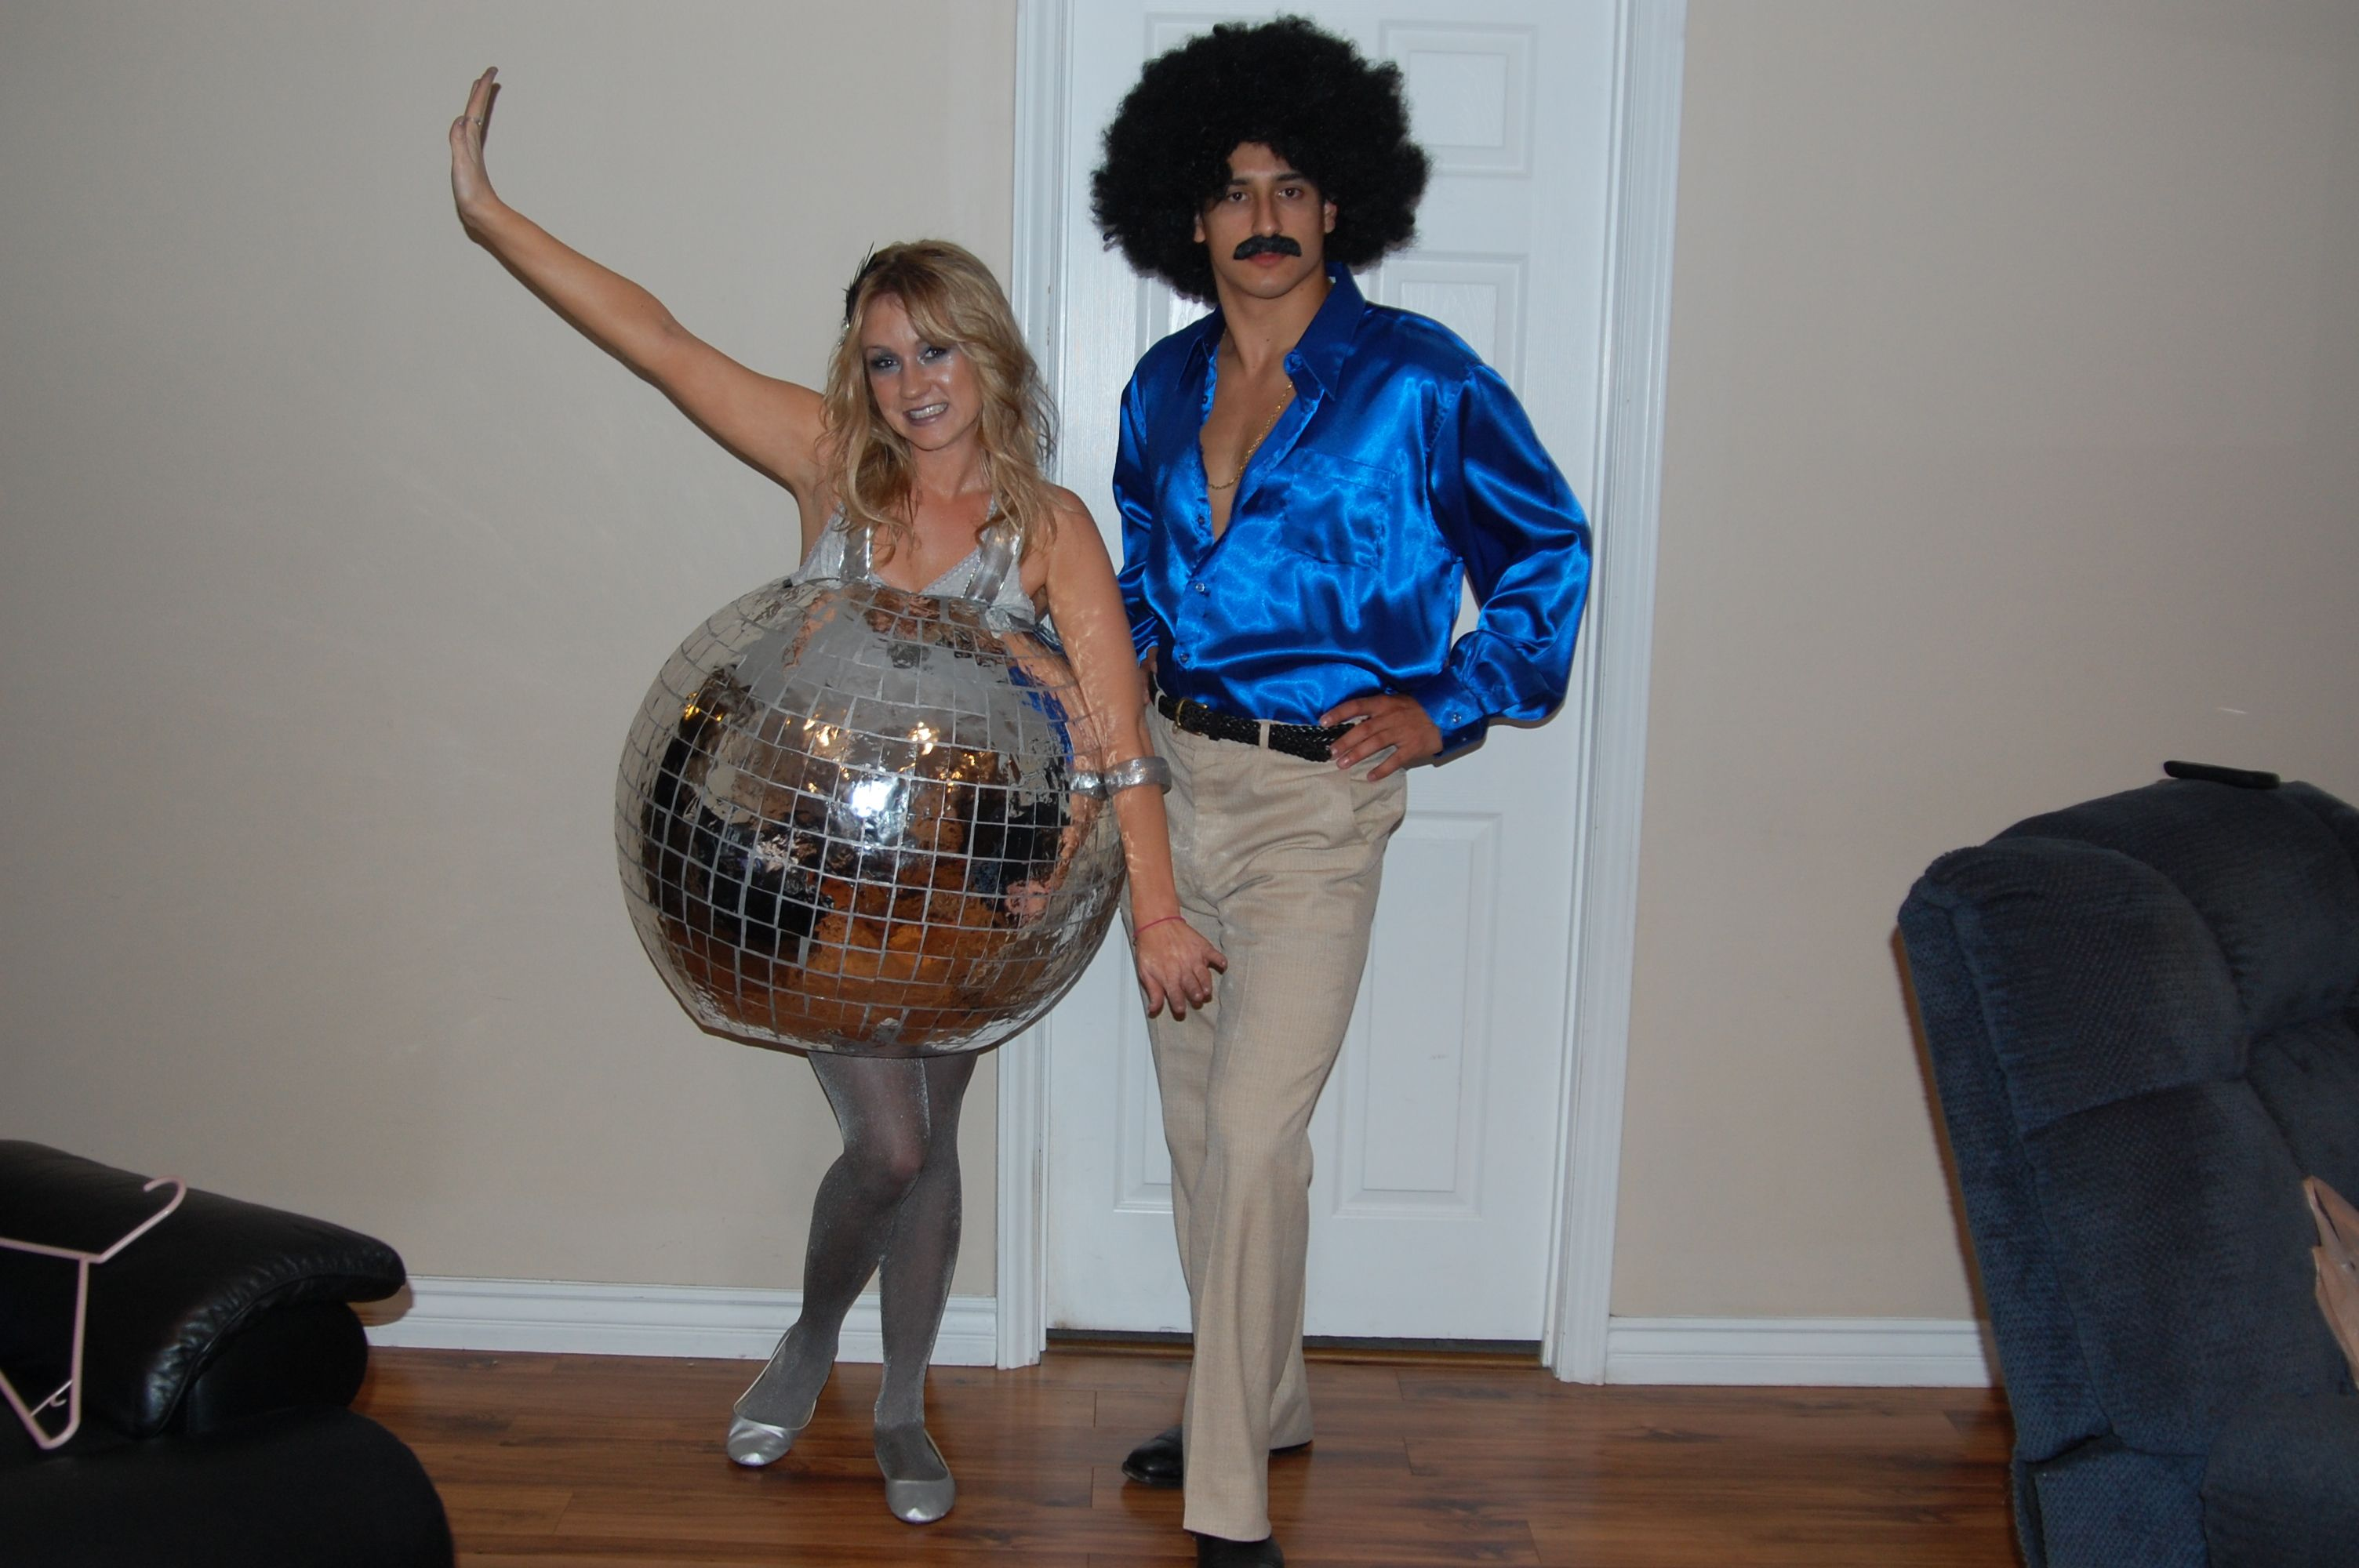 Diy halloween costume disco ball and   dancer was semi easy to make but so worth it also rh pinterest